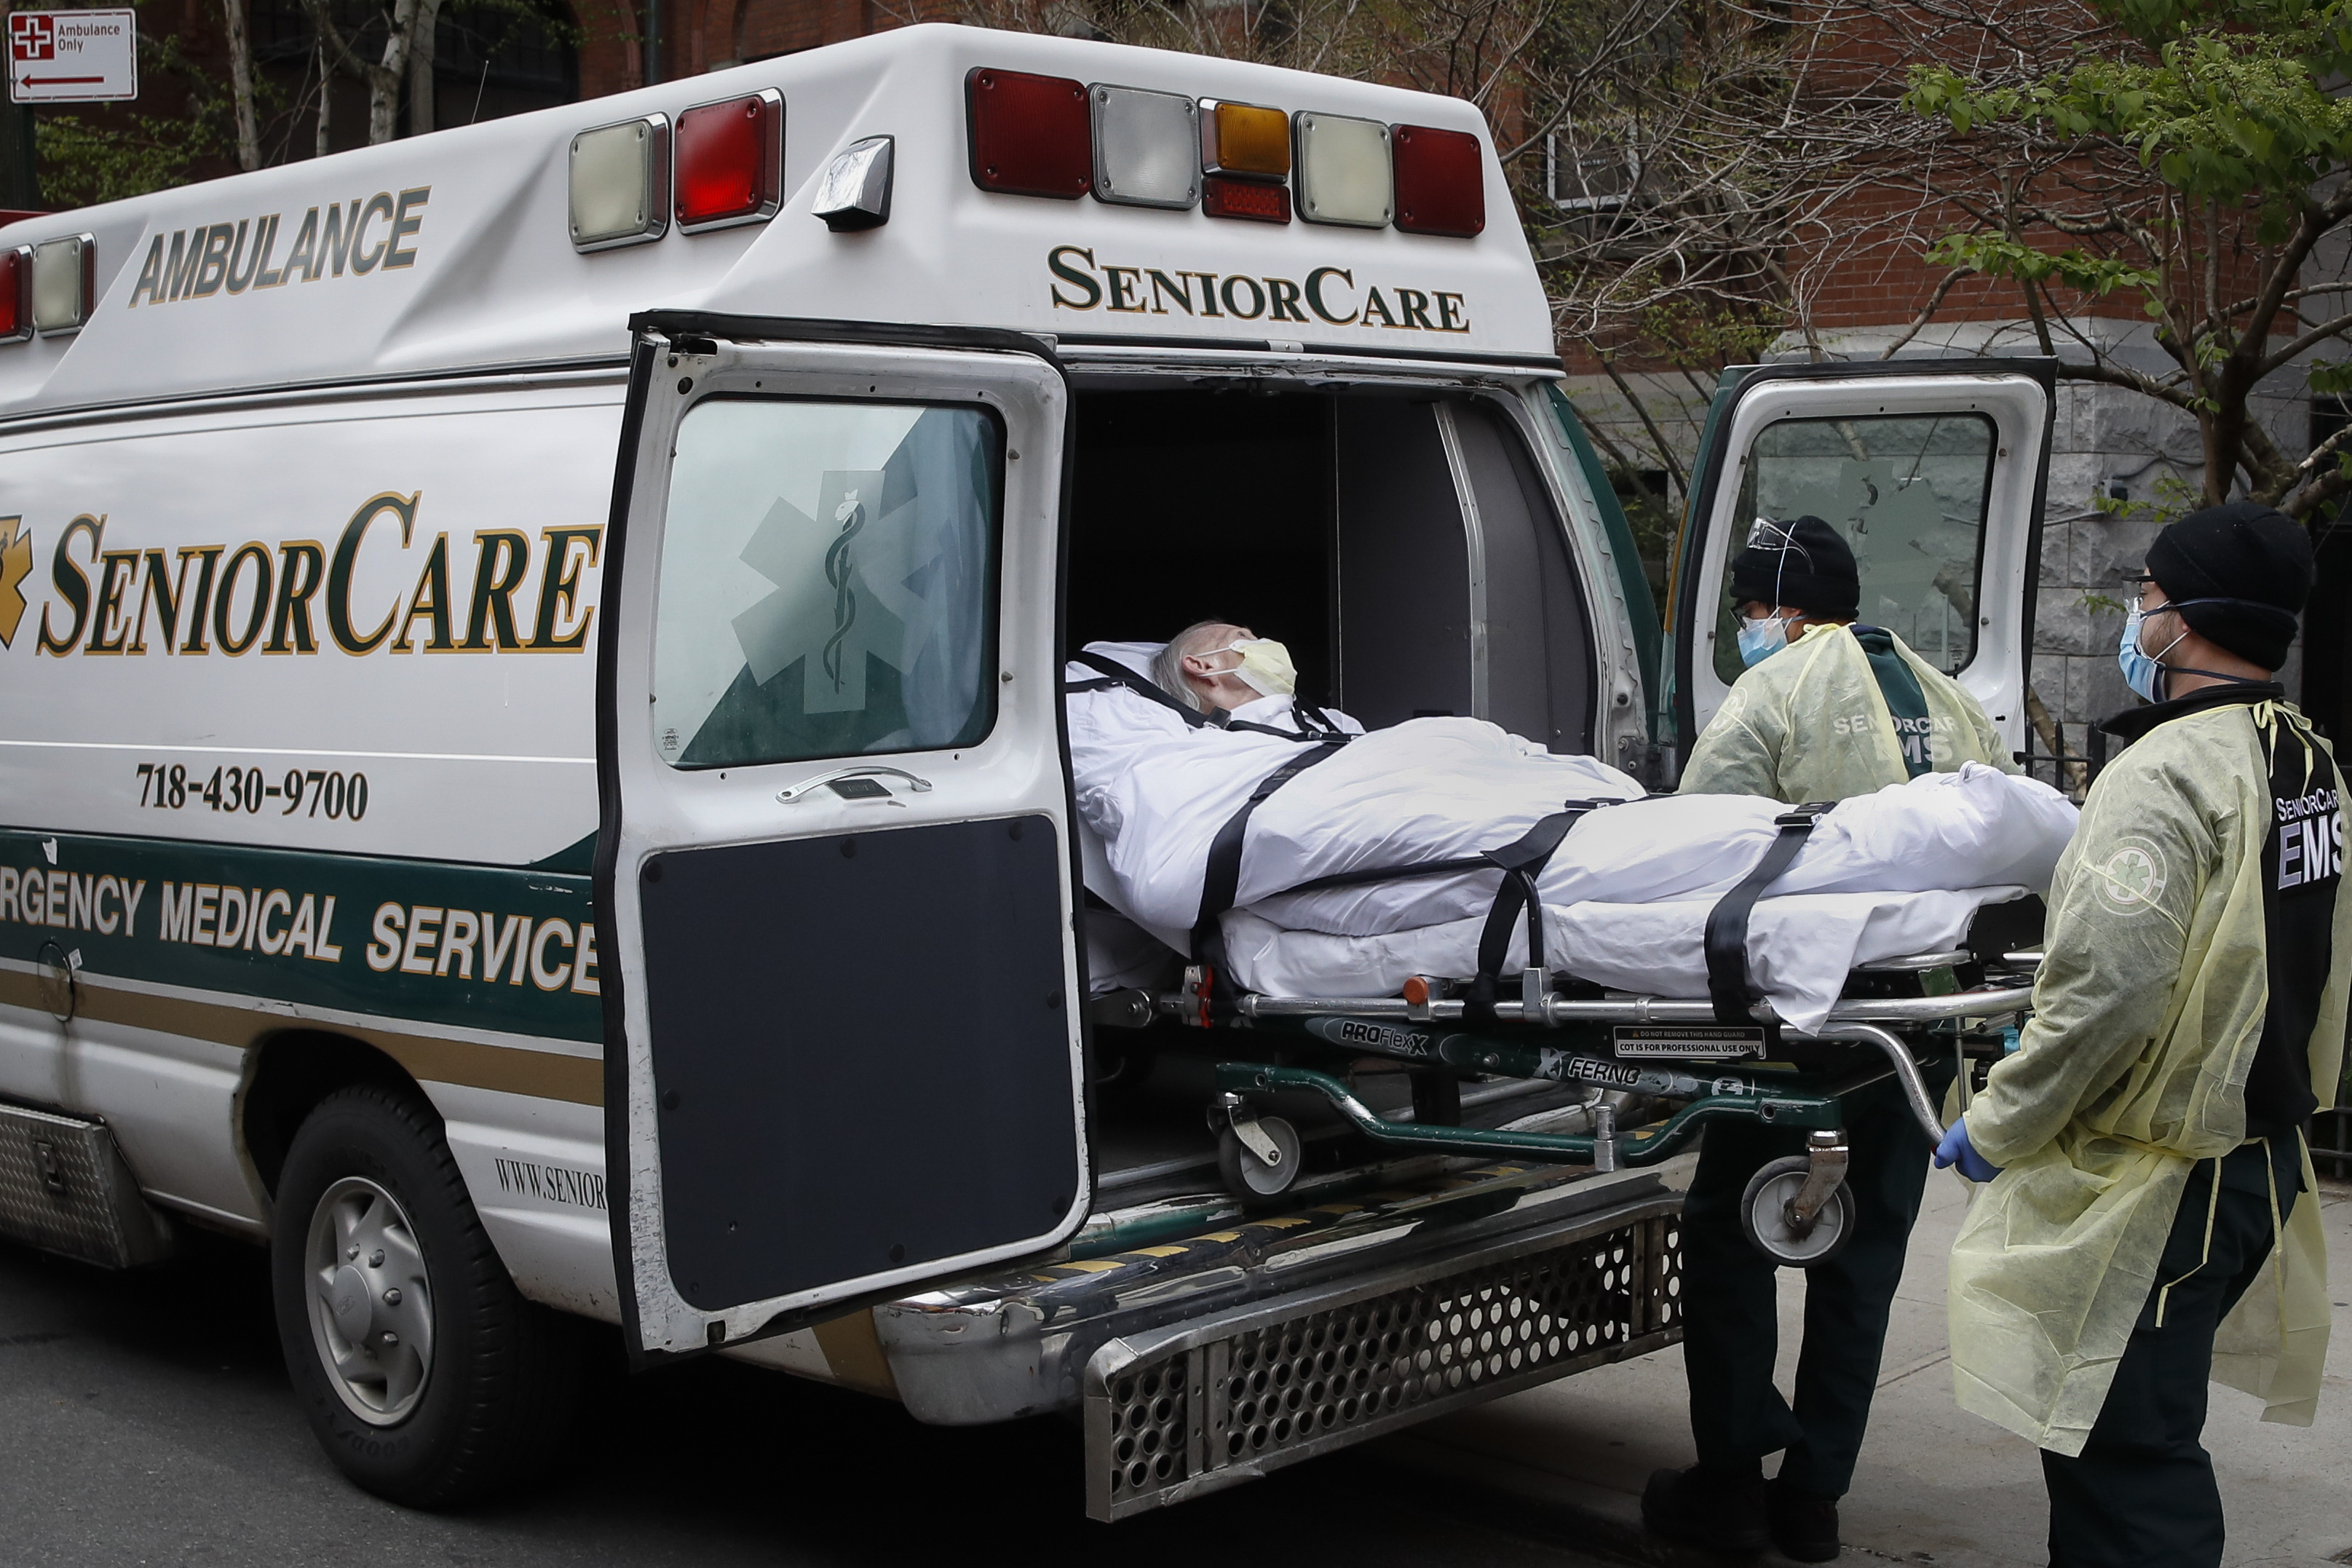 In this April 17, 2020, file photo, a patient is loaded into an ambulance by emergency medical workers outside Cobble Hill Health Center in the Brooklyn borough of New York. More than 9,000 recovering coronavirus patients in New York state were released from hospitals into nursing homes at the height of the pandemic under a controversial order that was scrapped amid criticisms it accelerated outbreaks, according to new records obtained by The Associated Press.